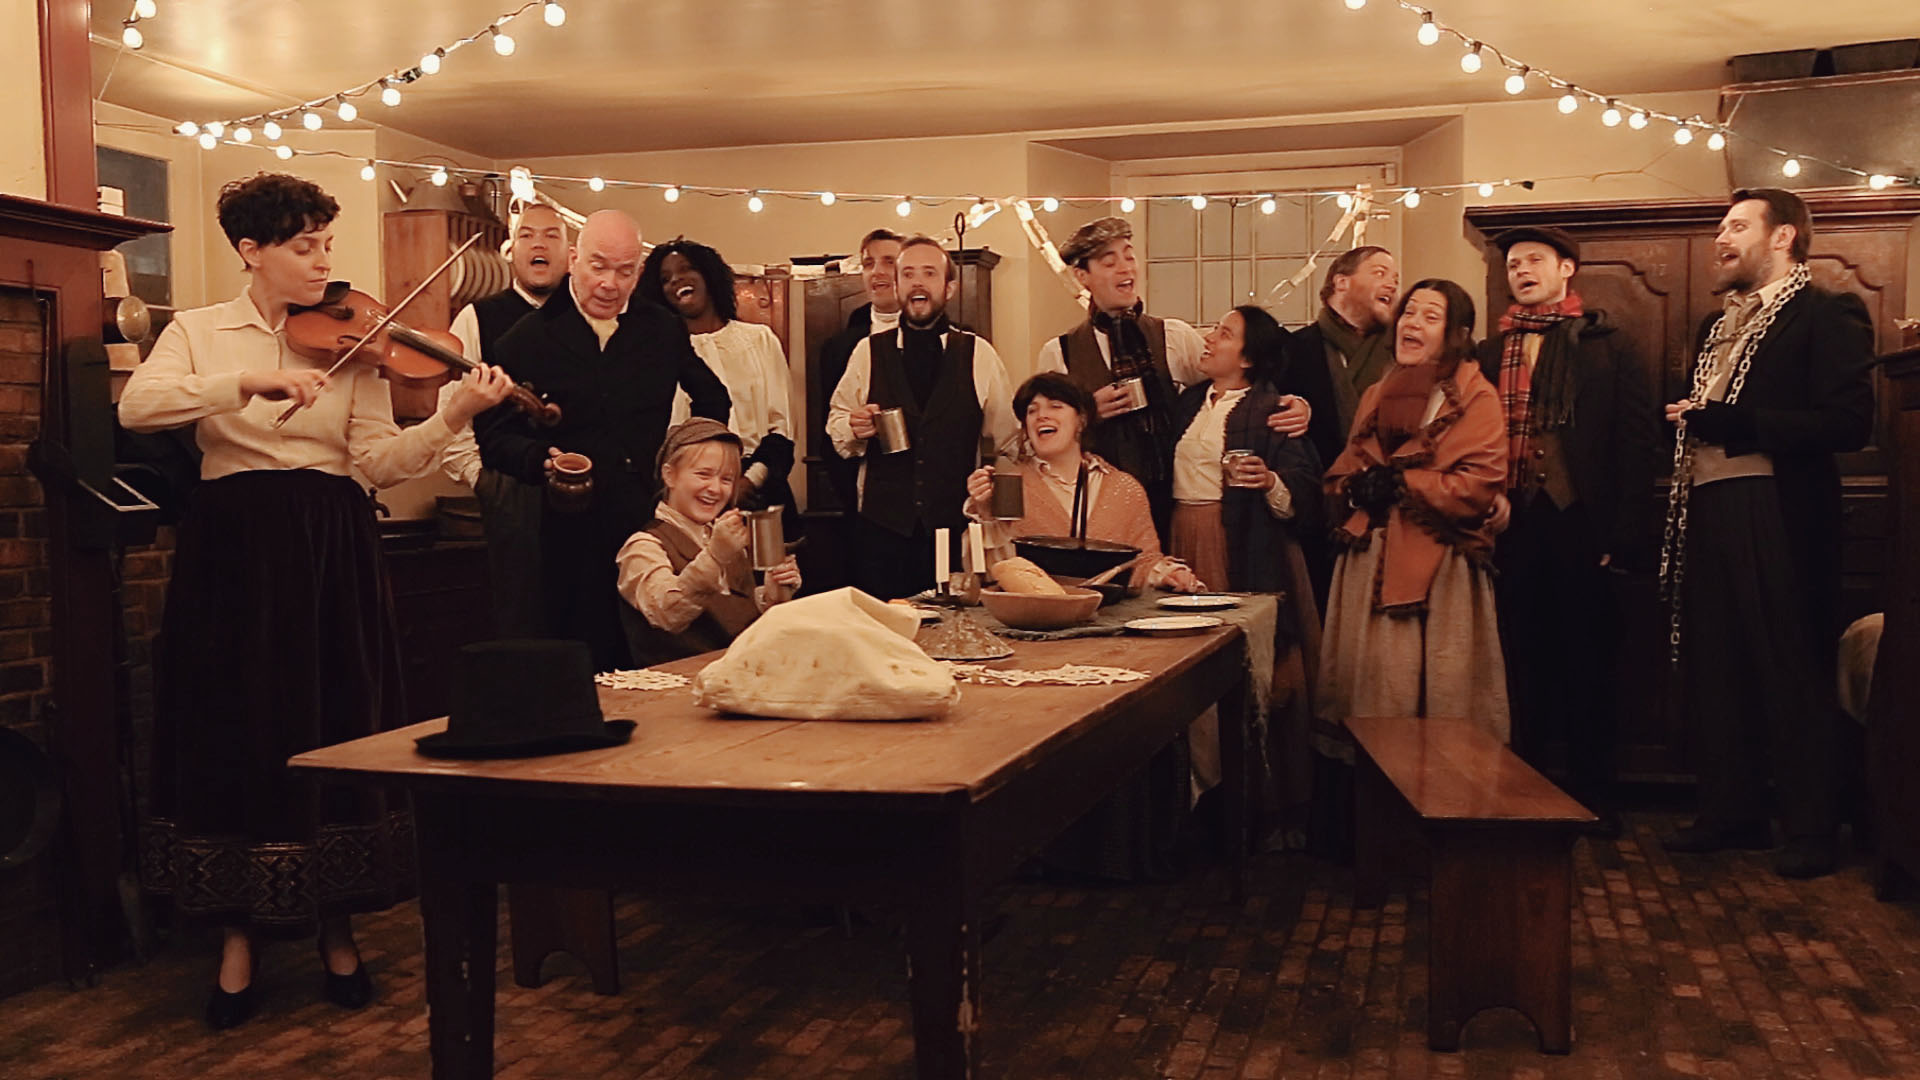 'A Christmas Carol' 2018 Production - Video Still Courtesy of Laura Dittmann